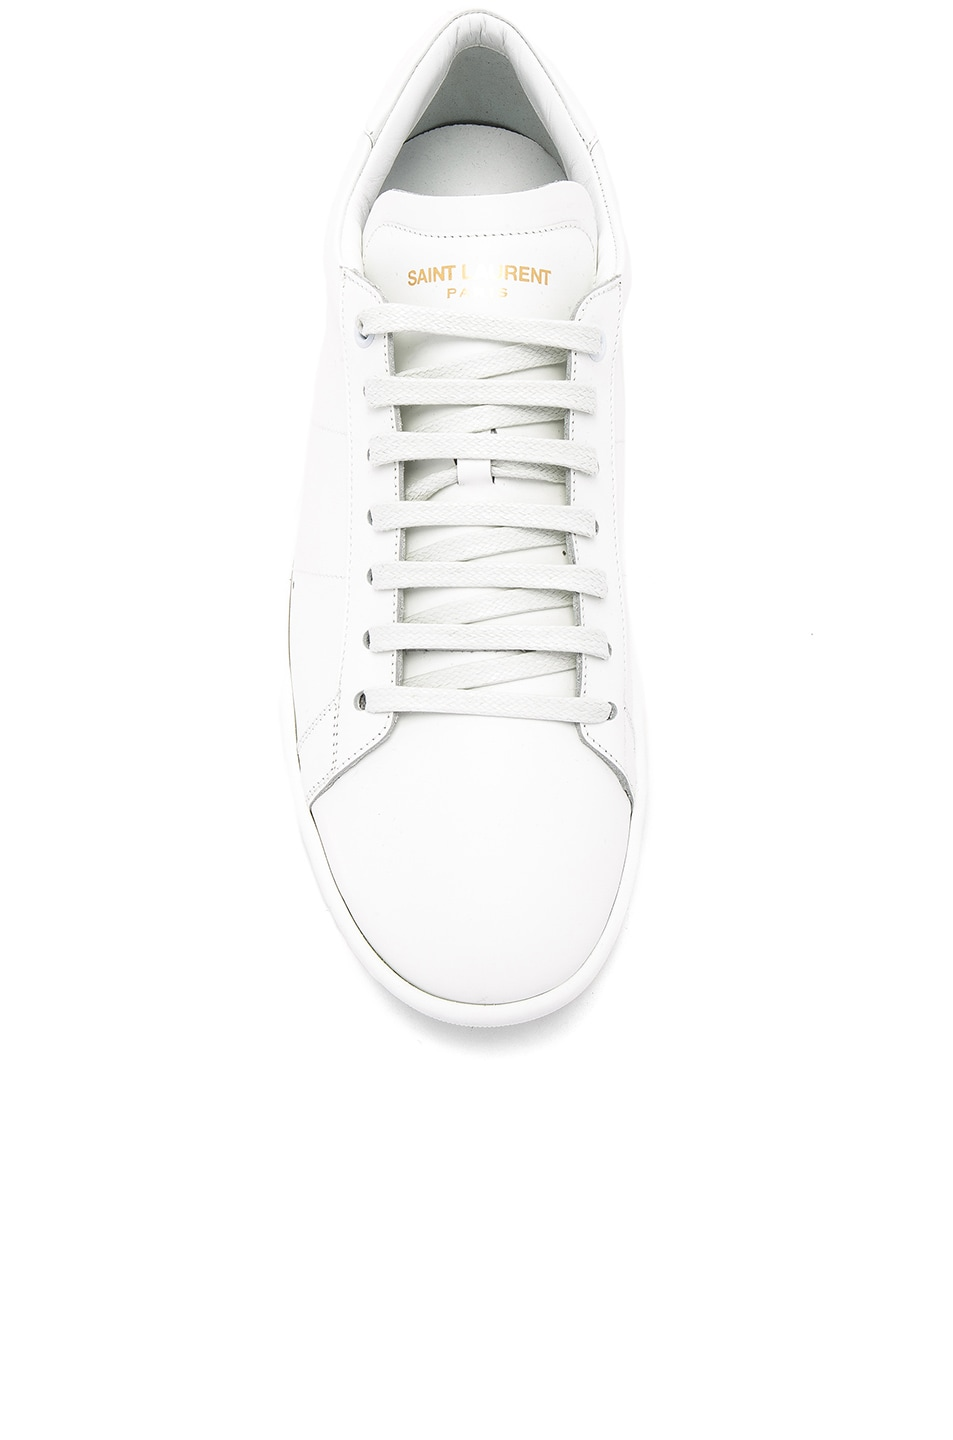 Image 4 of Saint Laurent Court Classic SL/01 Sneakers in White